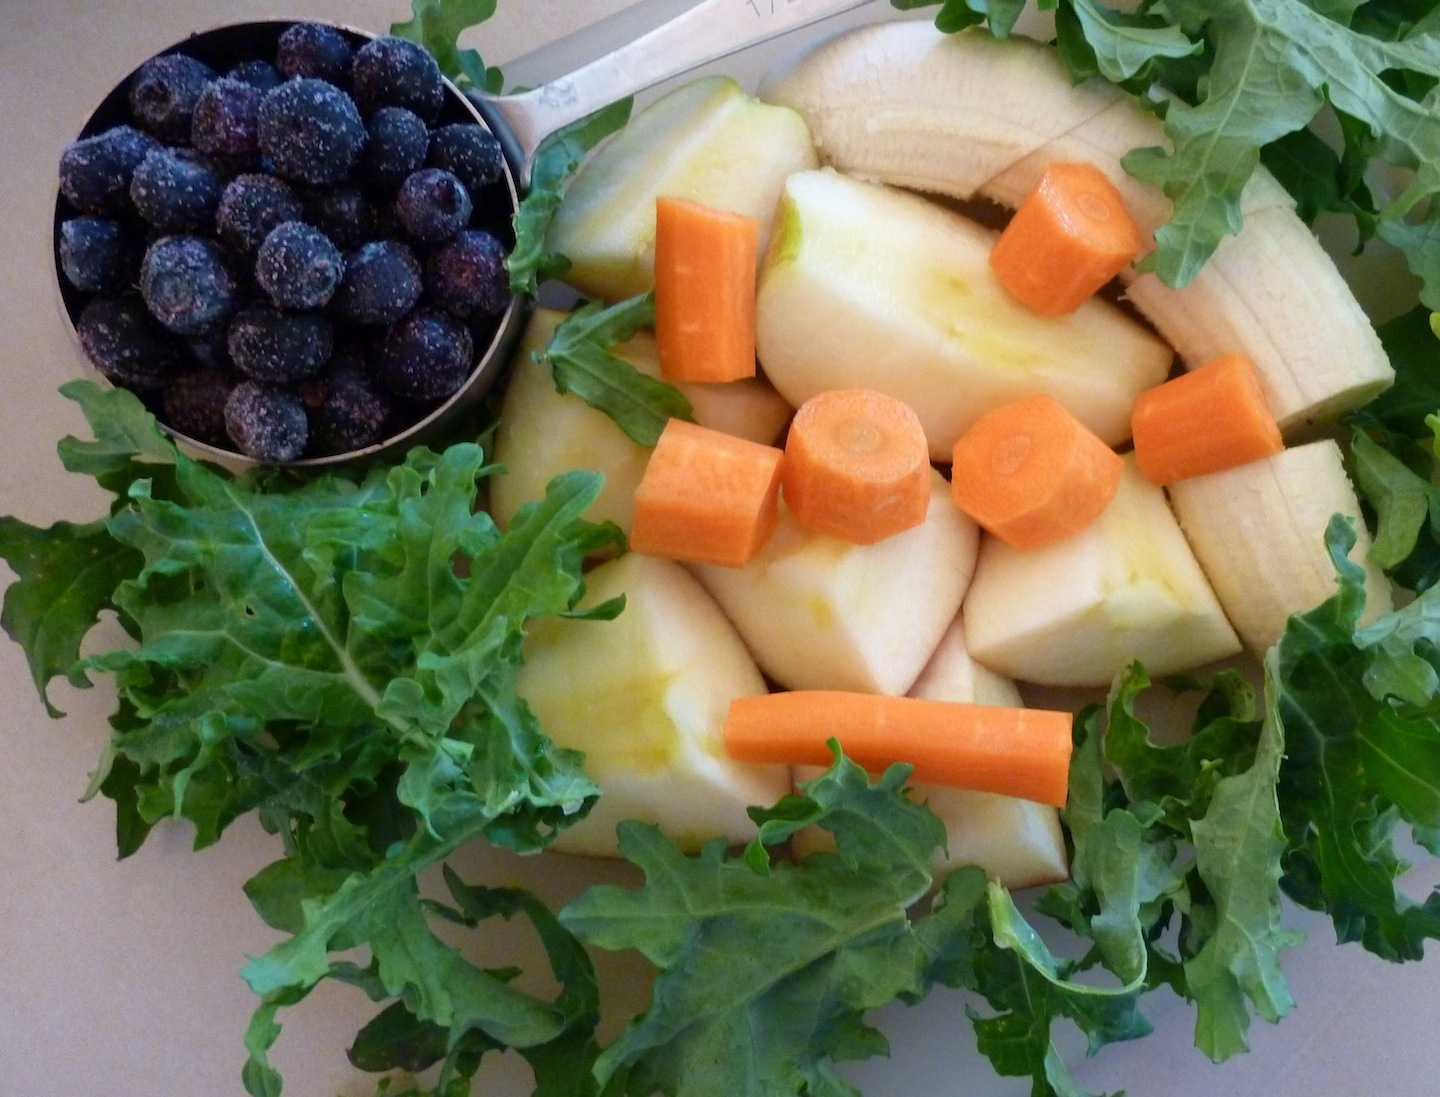 Don't Forget The Veggies In Your Morning Smoothie! Amount Of Fruits And Veggies Needed Daily.